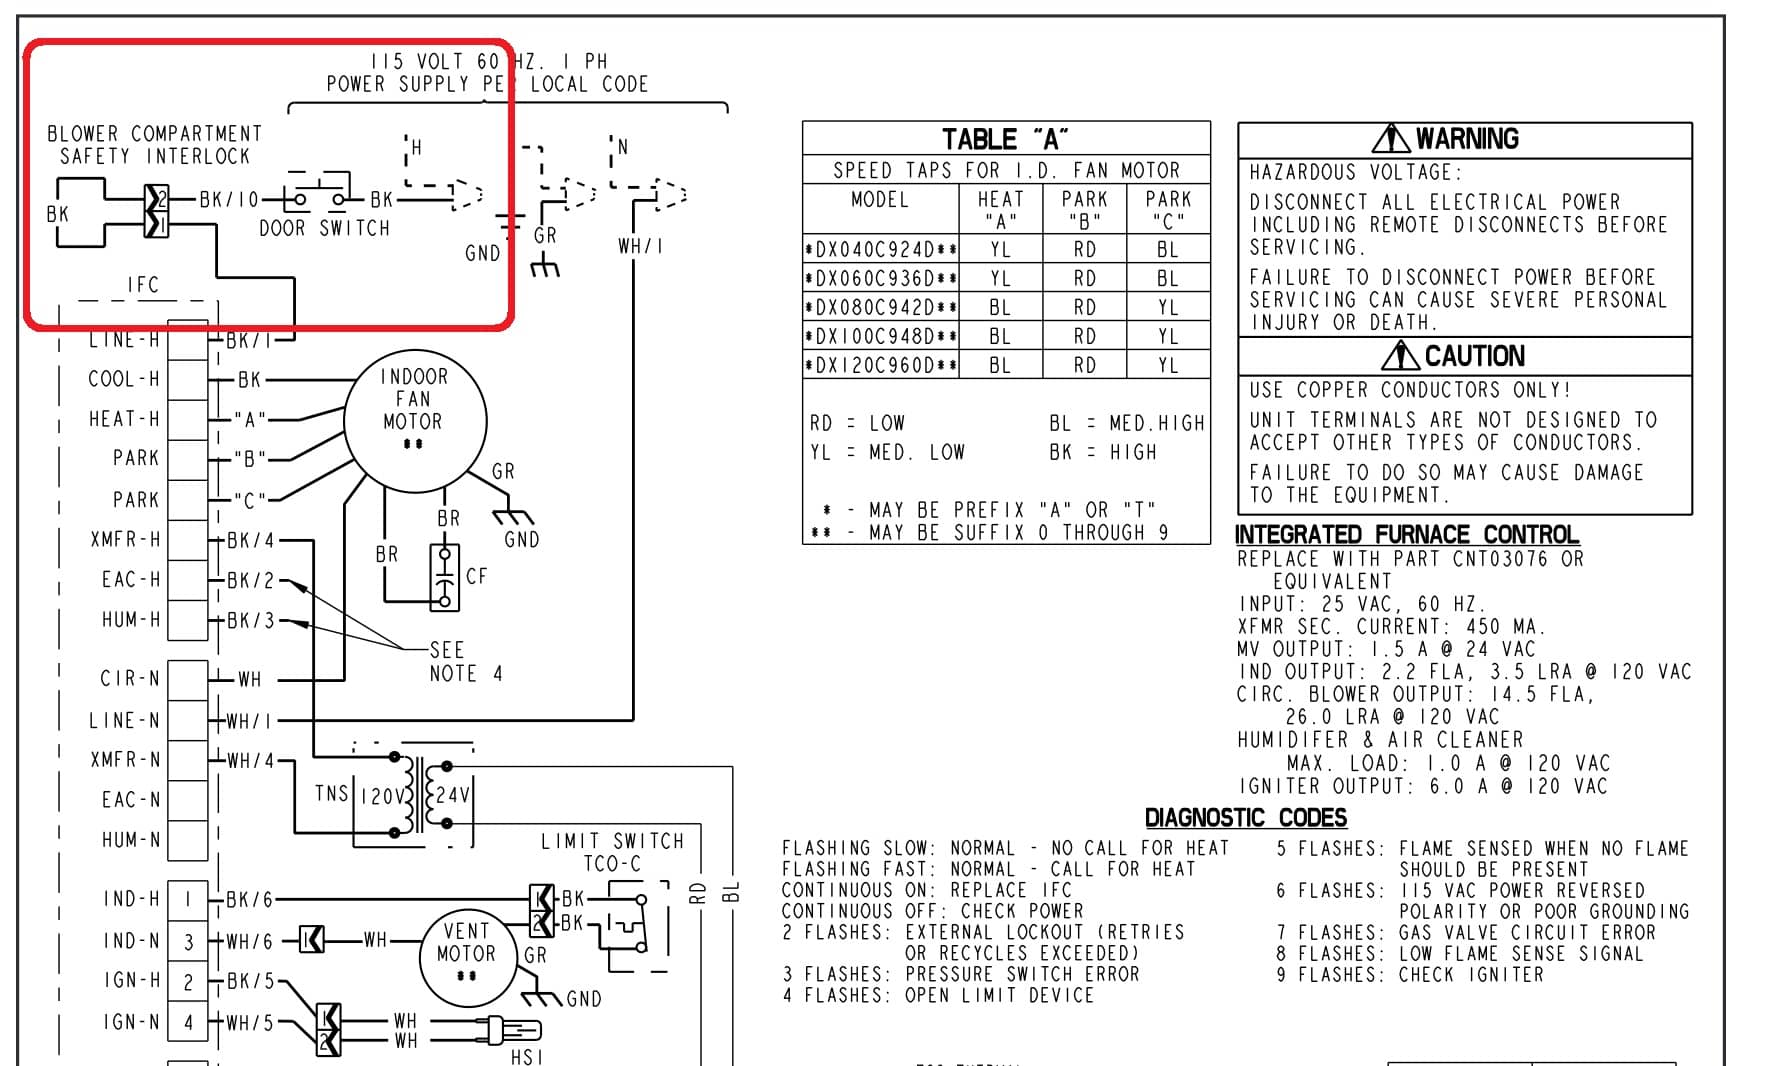 York Ac Wiring Diagram in addition Air Tap Wiring Diagram additionally Trane Air Conditioner Mechanical furthermore Samsung Mini Split Systems Wiring Diagram also Haier Wiring Diagram. on mini split ac wiring diagram